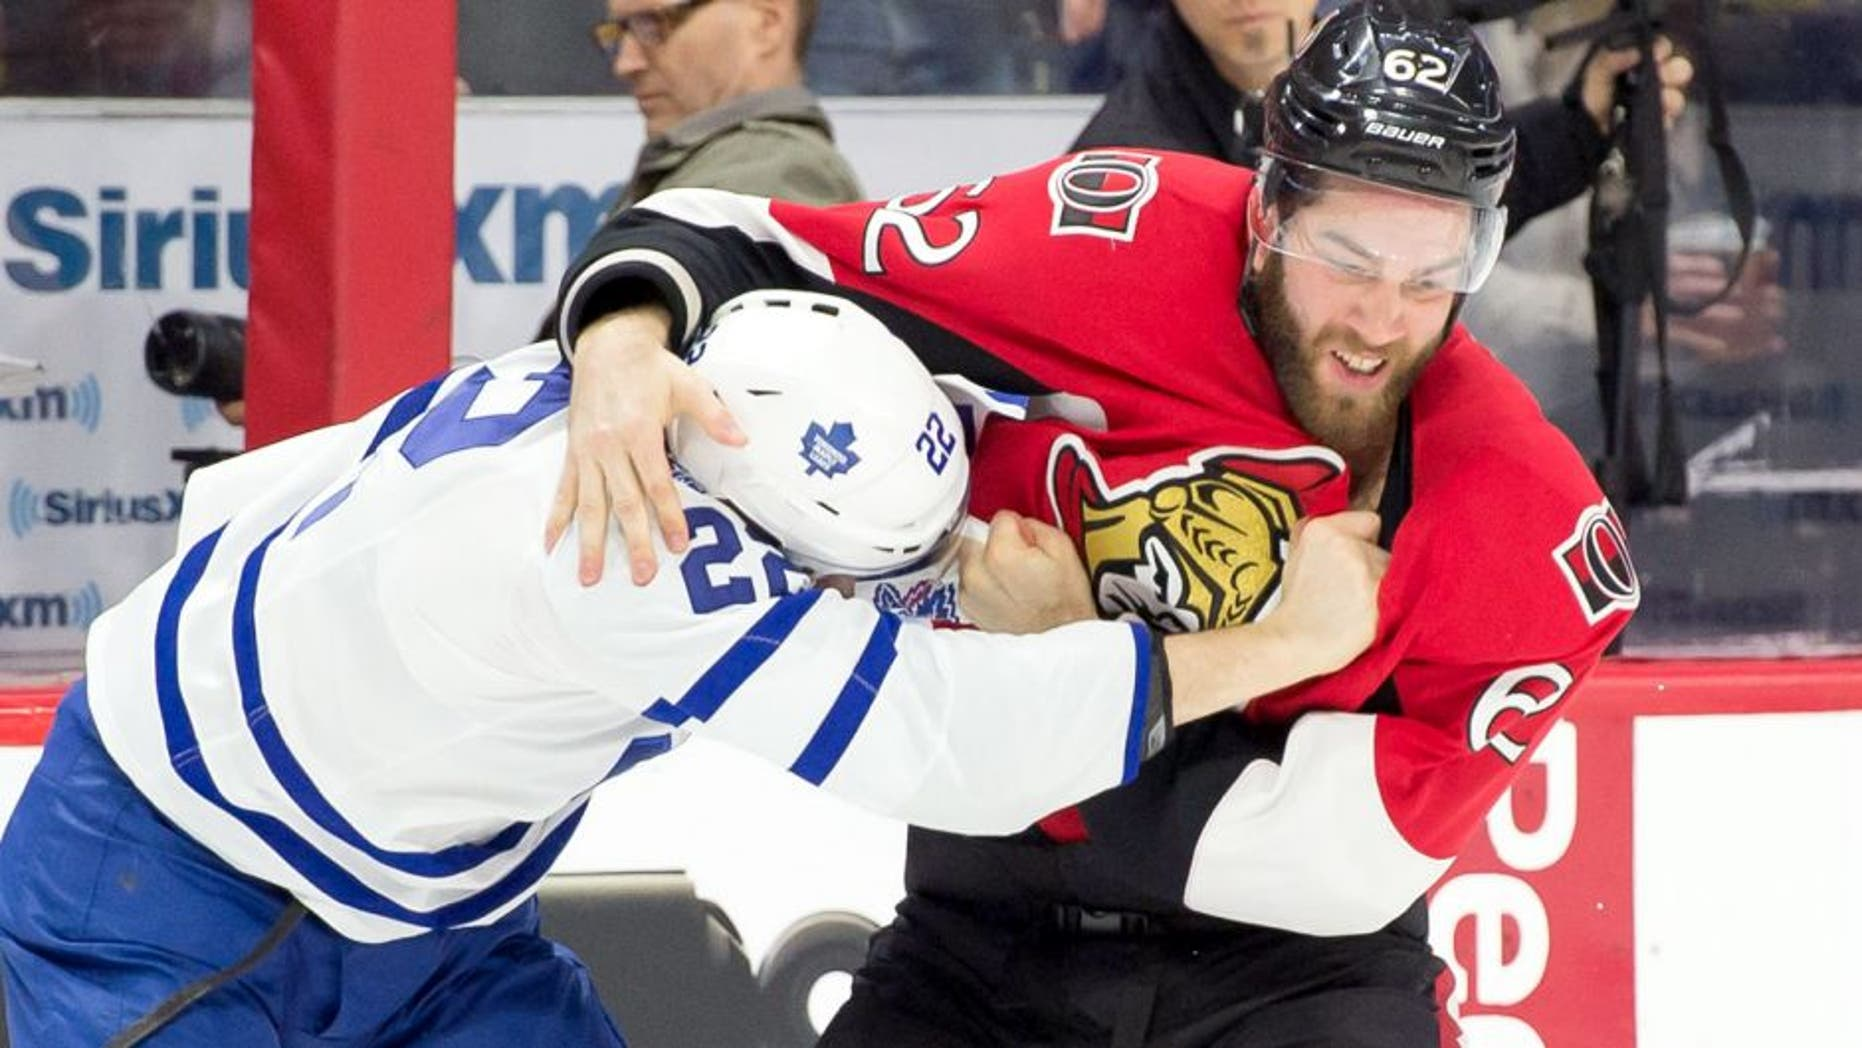 Mar 21, 2015; Ottawa, Ontario, CAN; Toronto Maple Leafs center Zach Sill (22) fights with Ottawa Senators defenseman Eric Gryba (62) in the first period at the Canadian Tire Centre. Mandatory Credit: Marc DesRosiers-USA TODAY Sports